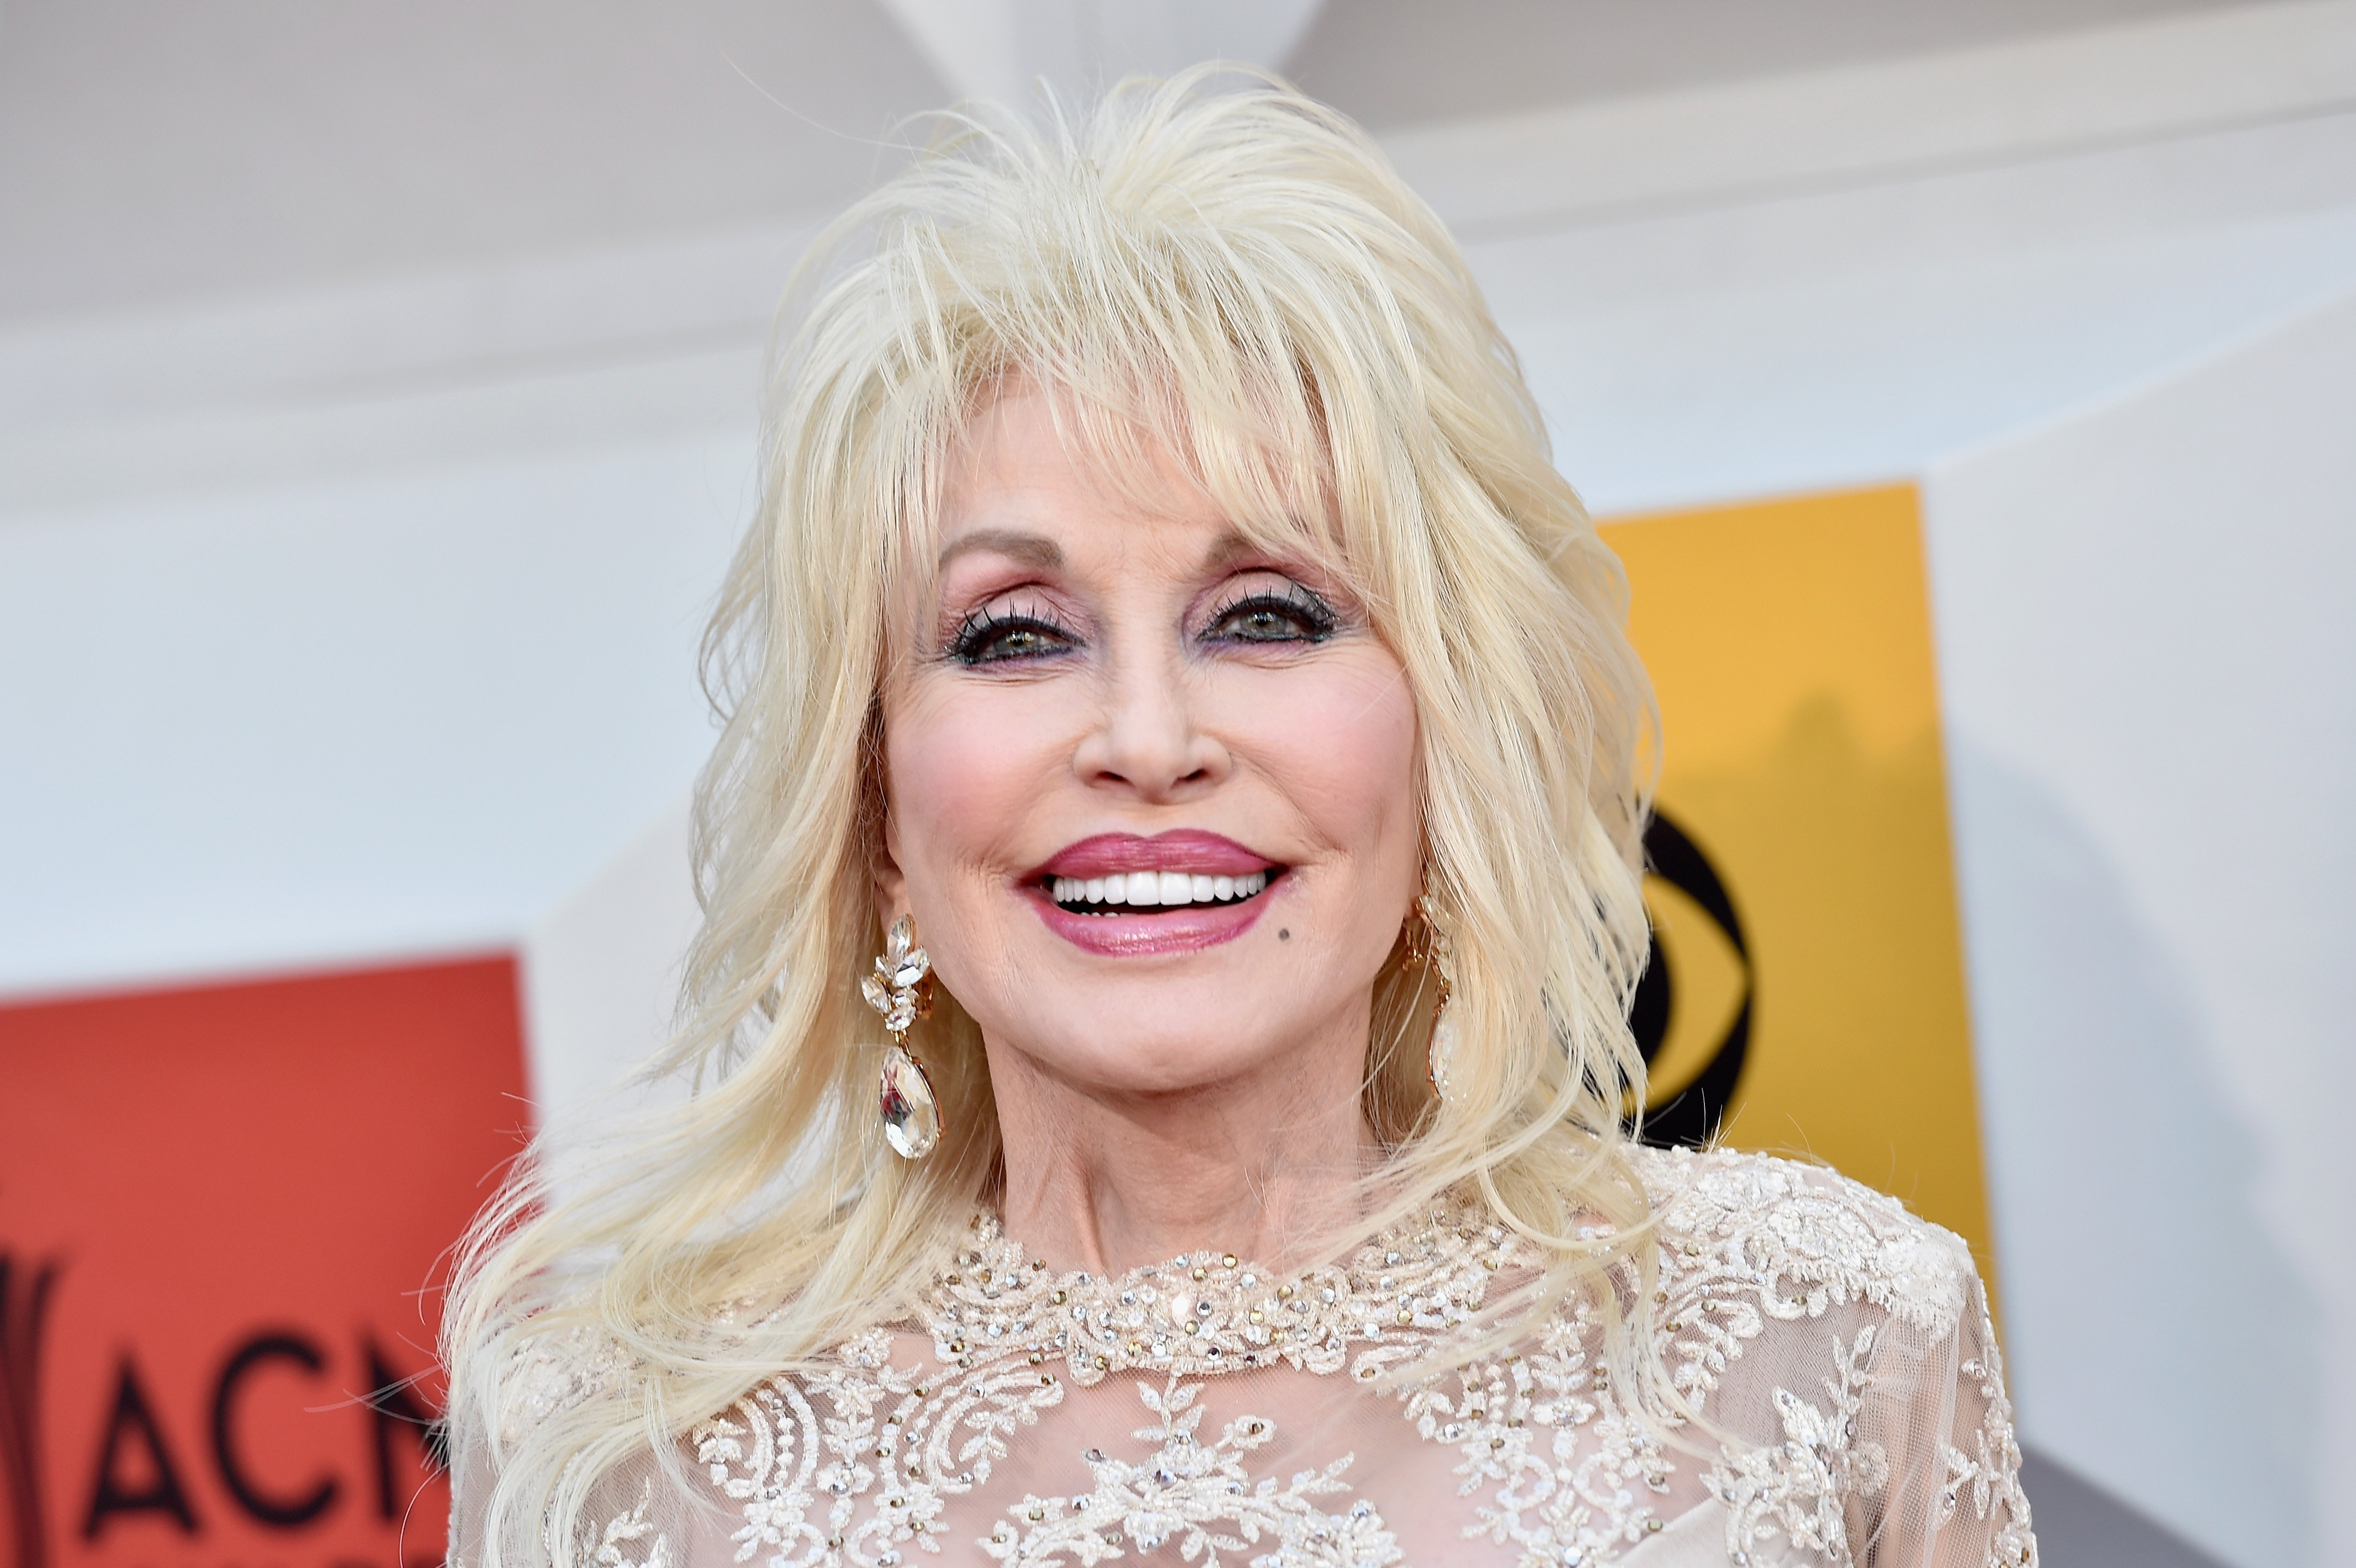 Dolly Parton bei den 51st Academy of Country Music Awards in der MGM Grand Garden Arena am 3. April 2016 in Las Vegas, Nevada. | Quelle: Getty Images